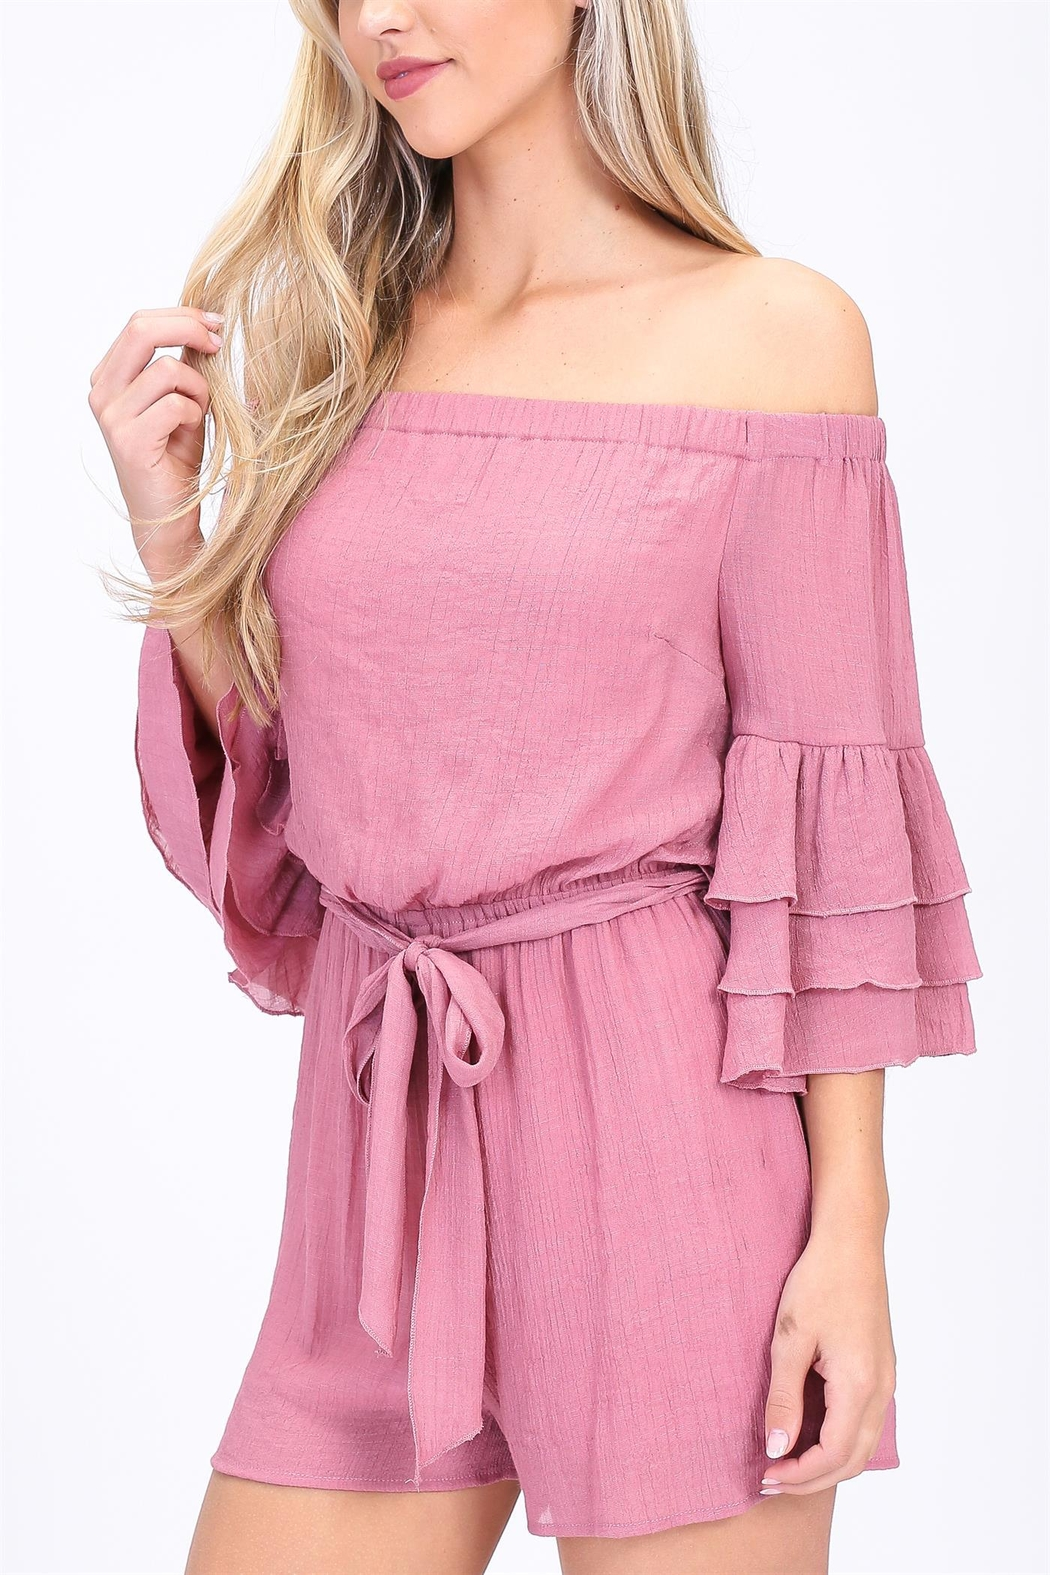 Off Shoulder Romper by Dor L'dor, New York City